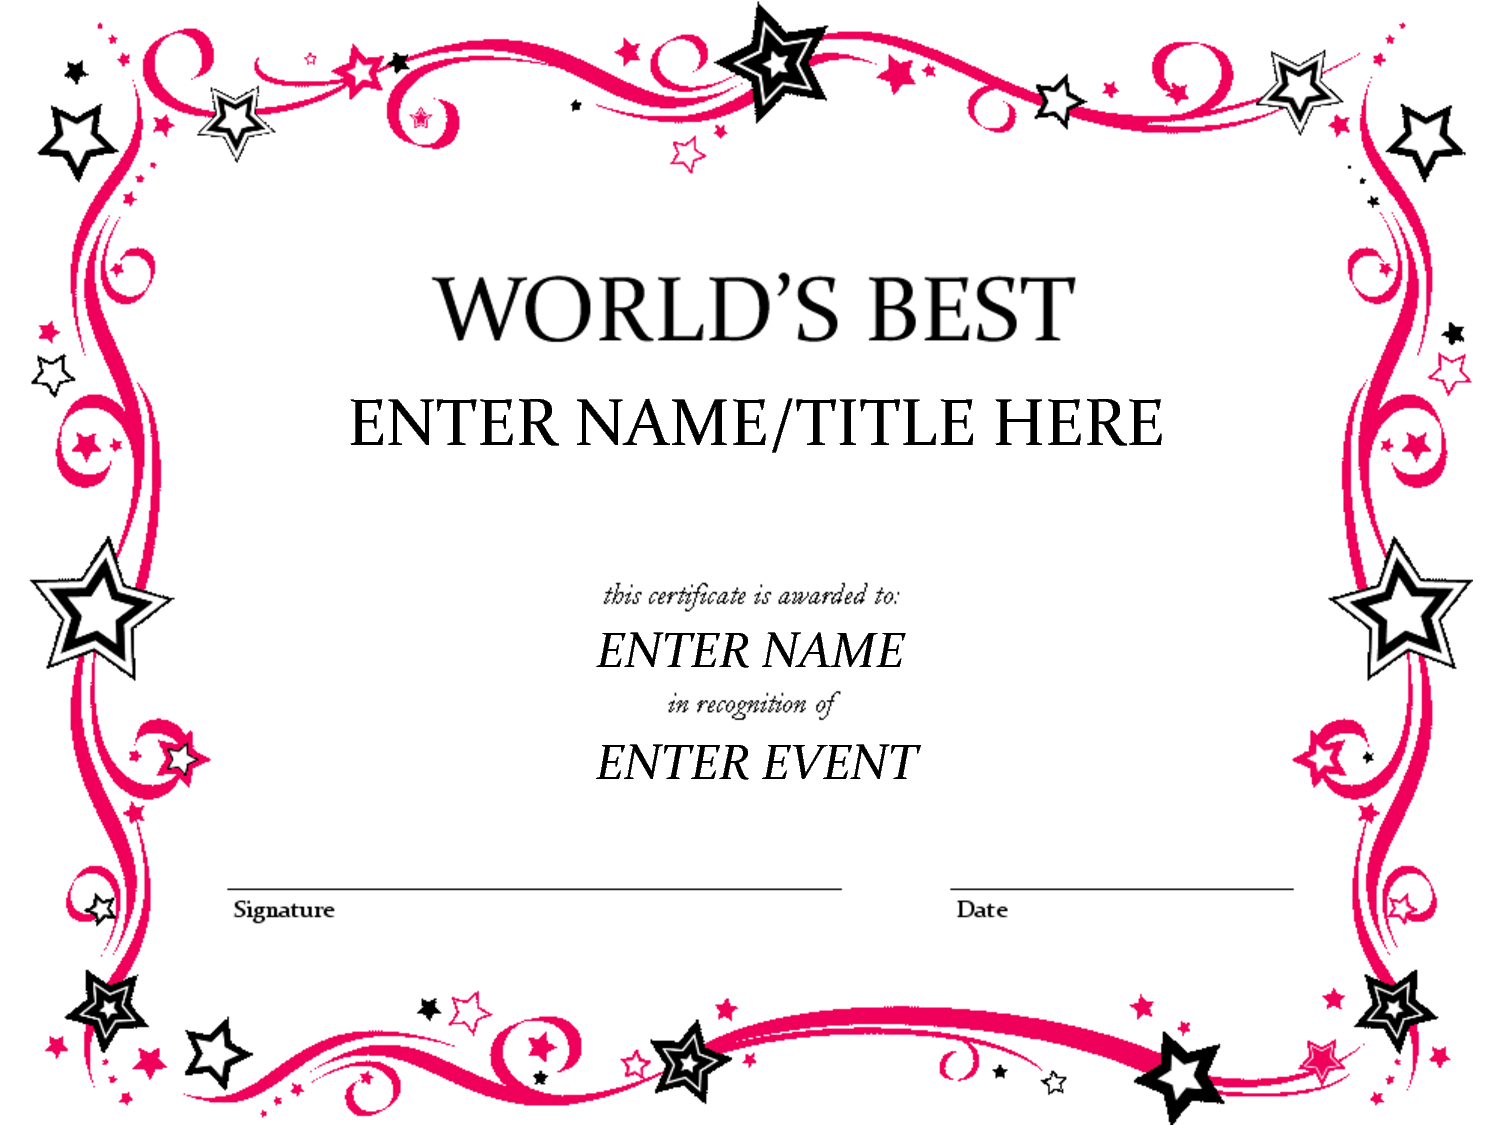 free gift certificate template word award certificate template – Blank Certificate Templates for Word